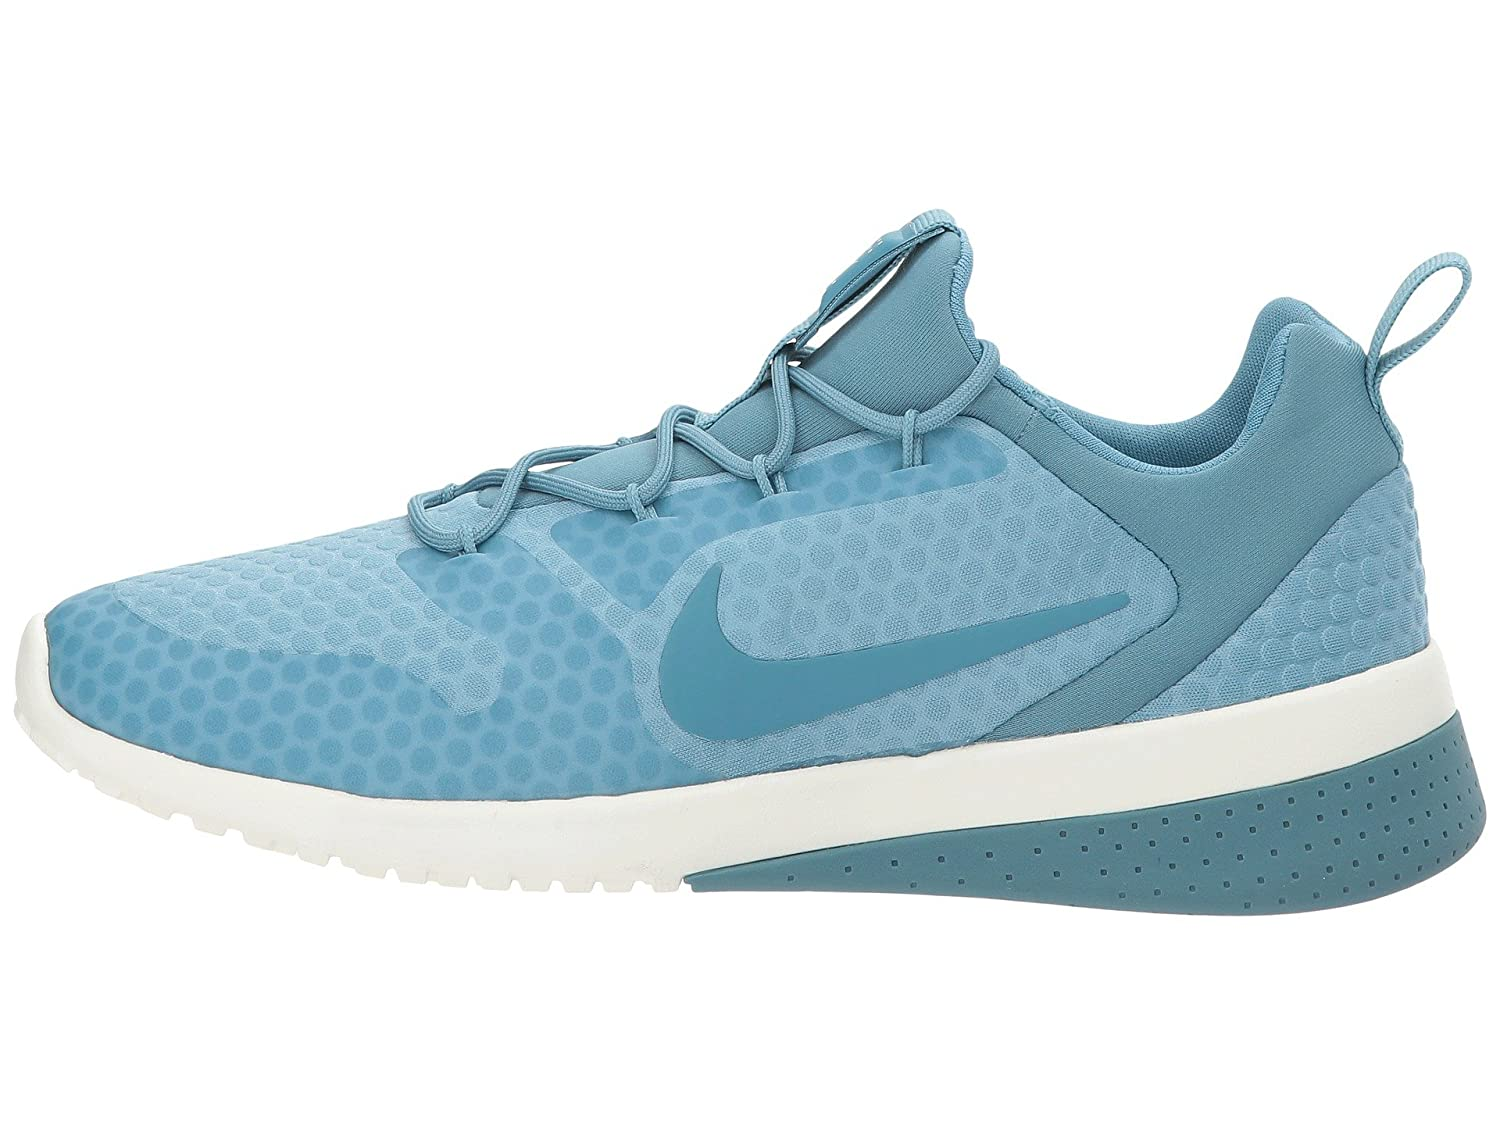 NIKE Air Zoom 90 Spikeless Golf Shoes 2017 Women B001VMJVU6 8.5 B(M) US|Cerulean/Cerulean/Sail